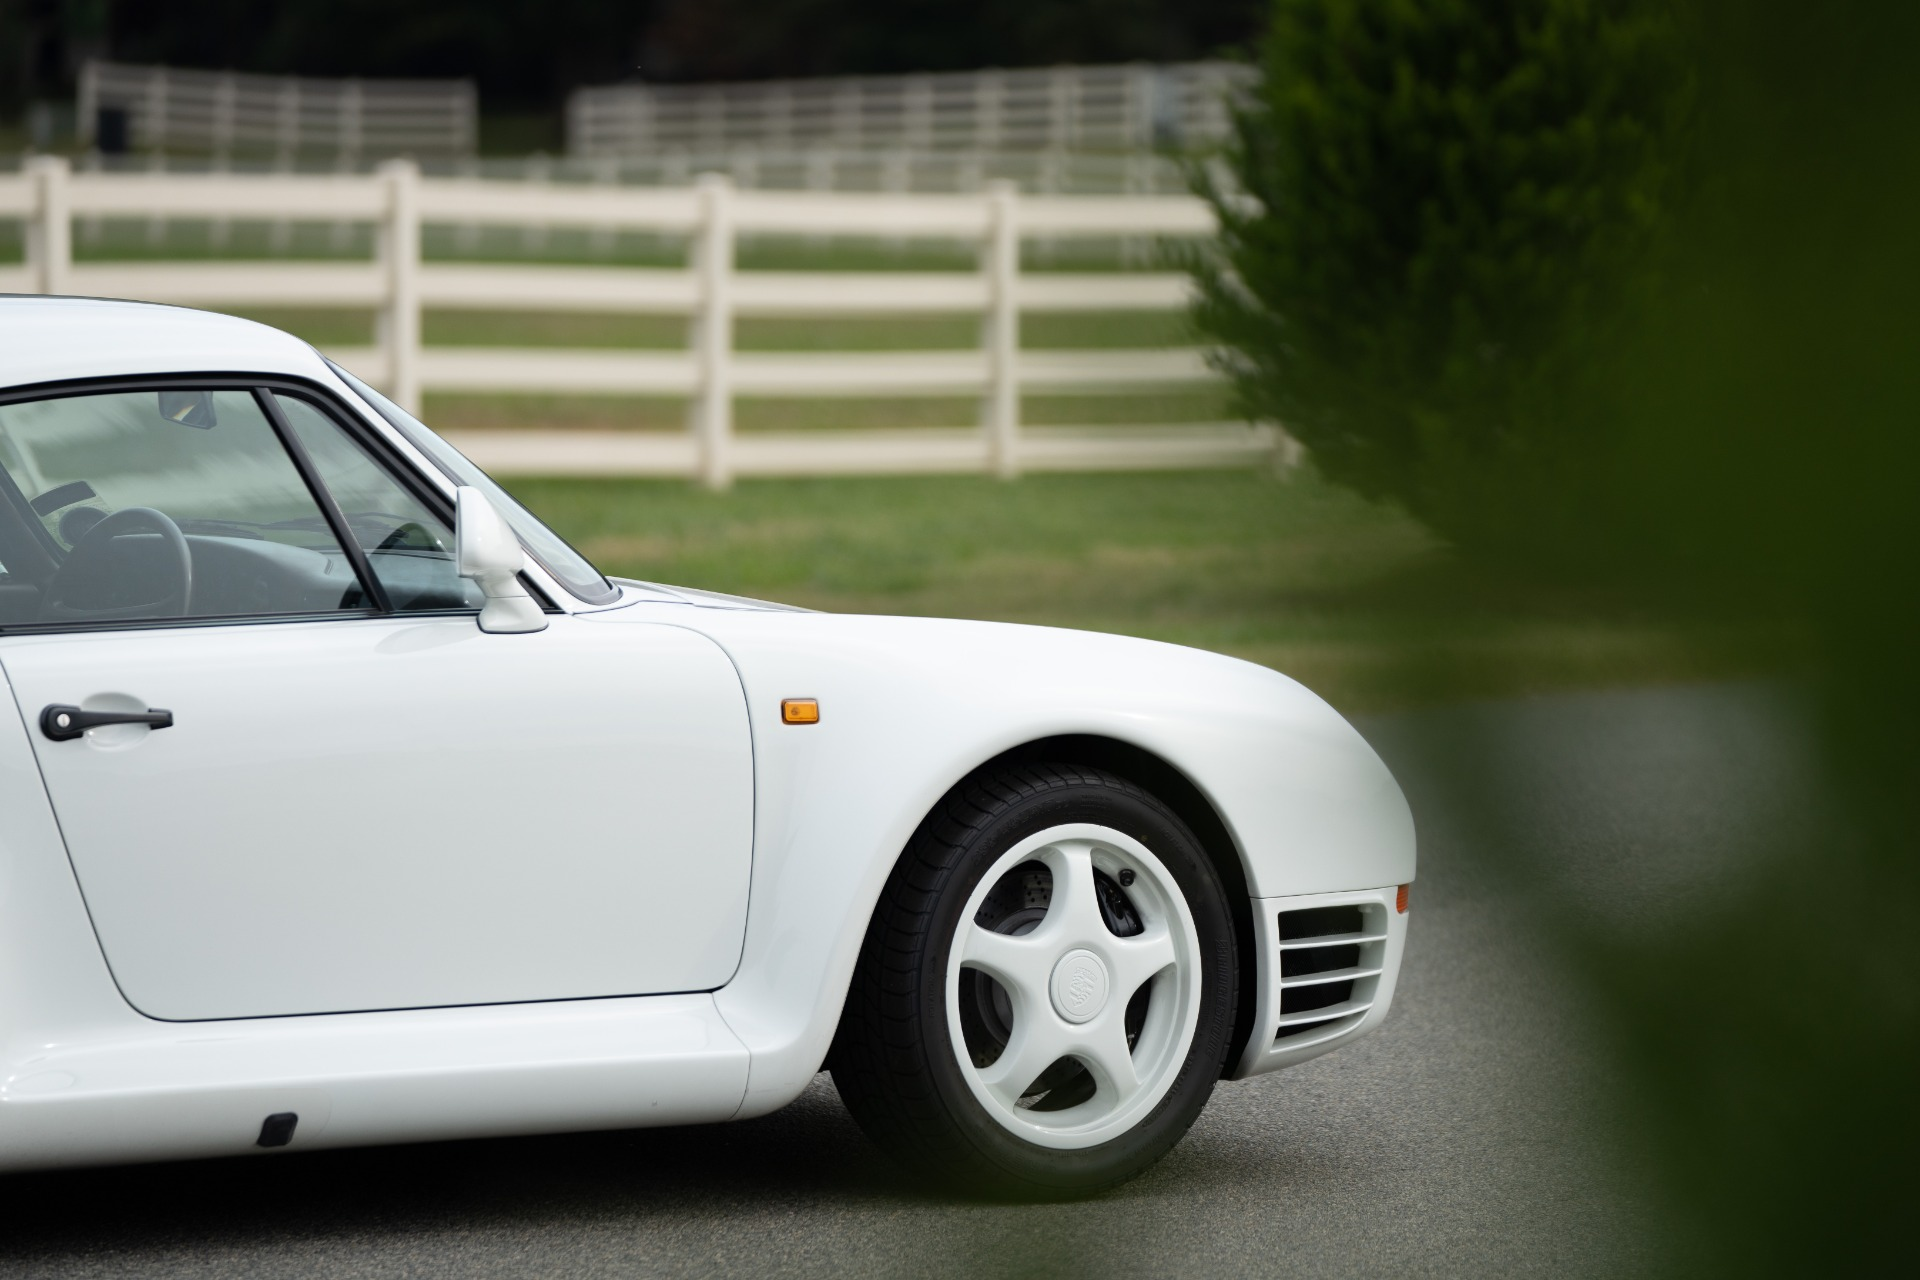 Used 1988 Porsche 959 KOMFORT COUPE / AWD / 6-SPEED MANUAL / ORIGINAL SUPERCAR for sale $1,425,000 at Formula Imports in Charlotte NC 28227 29